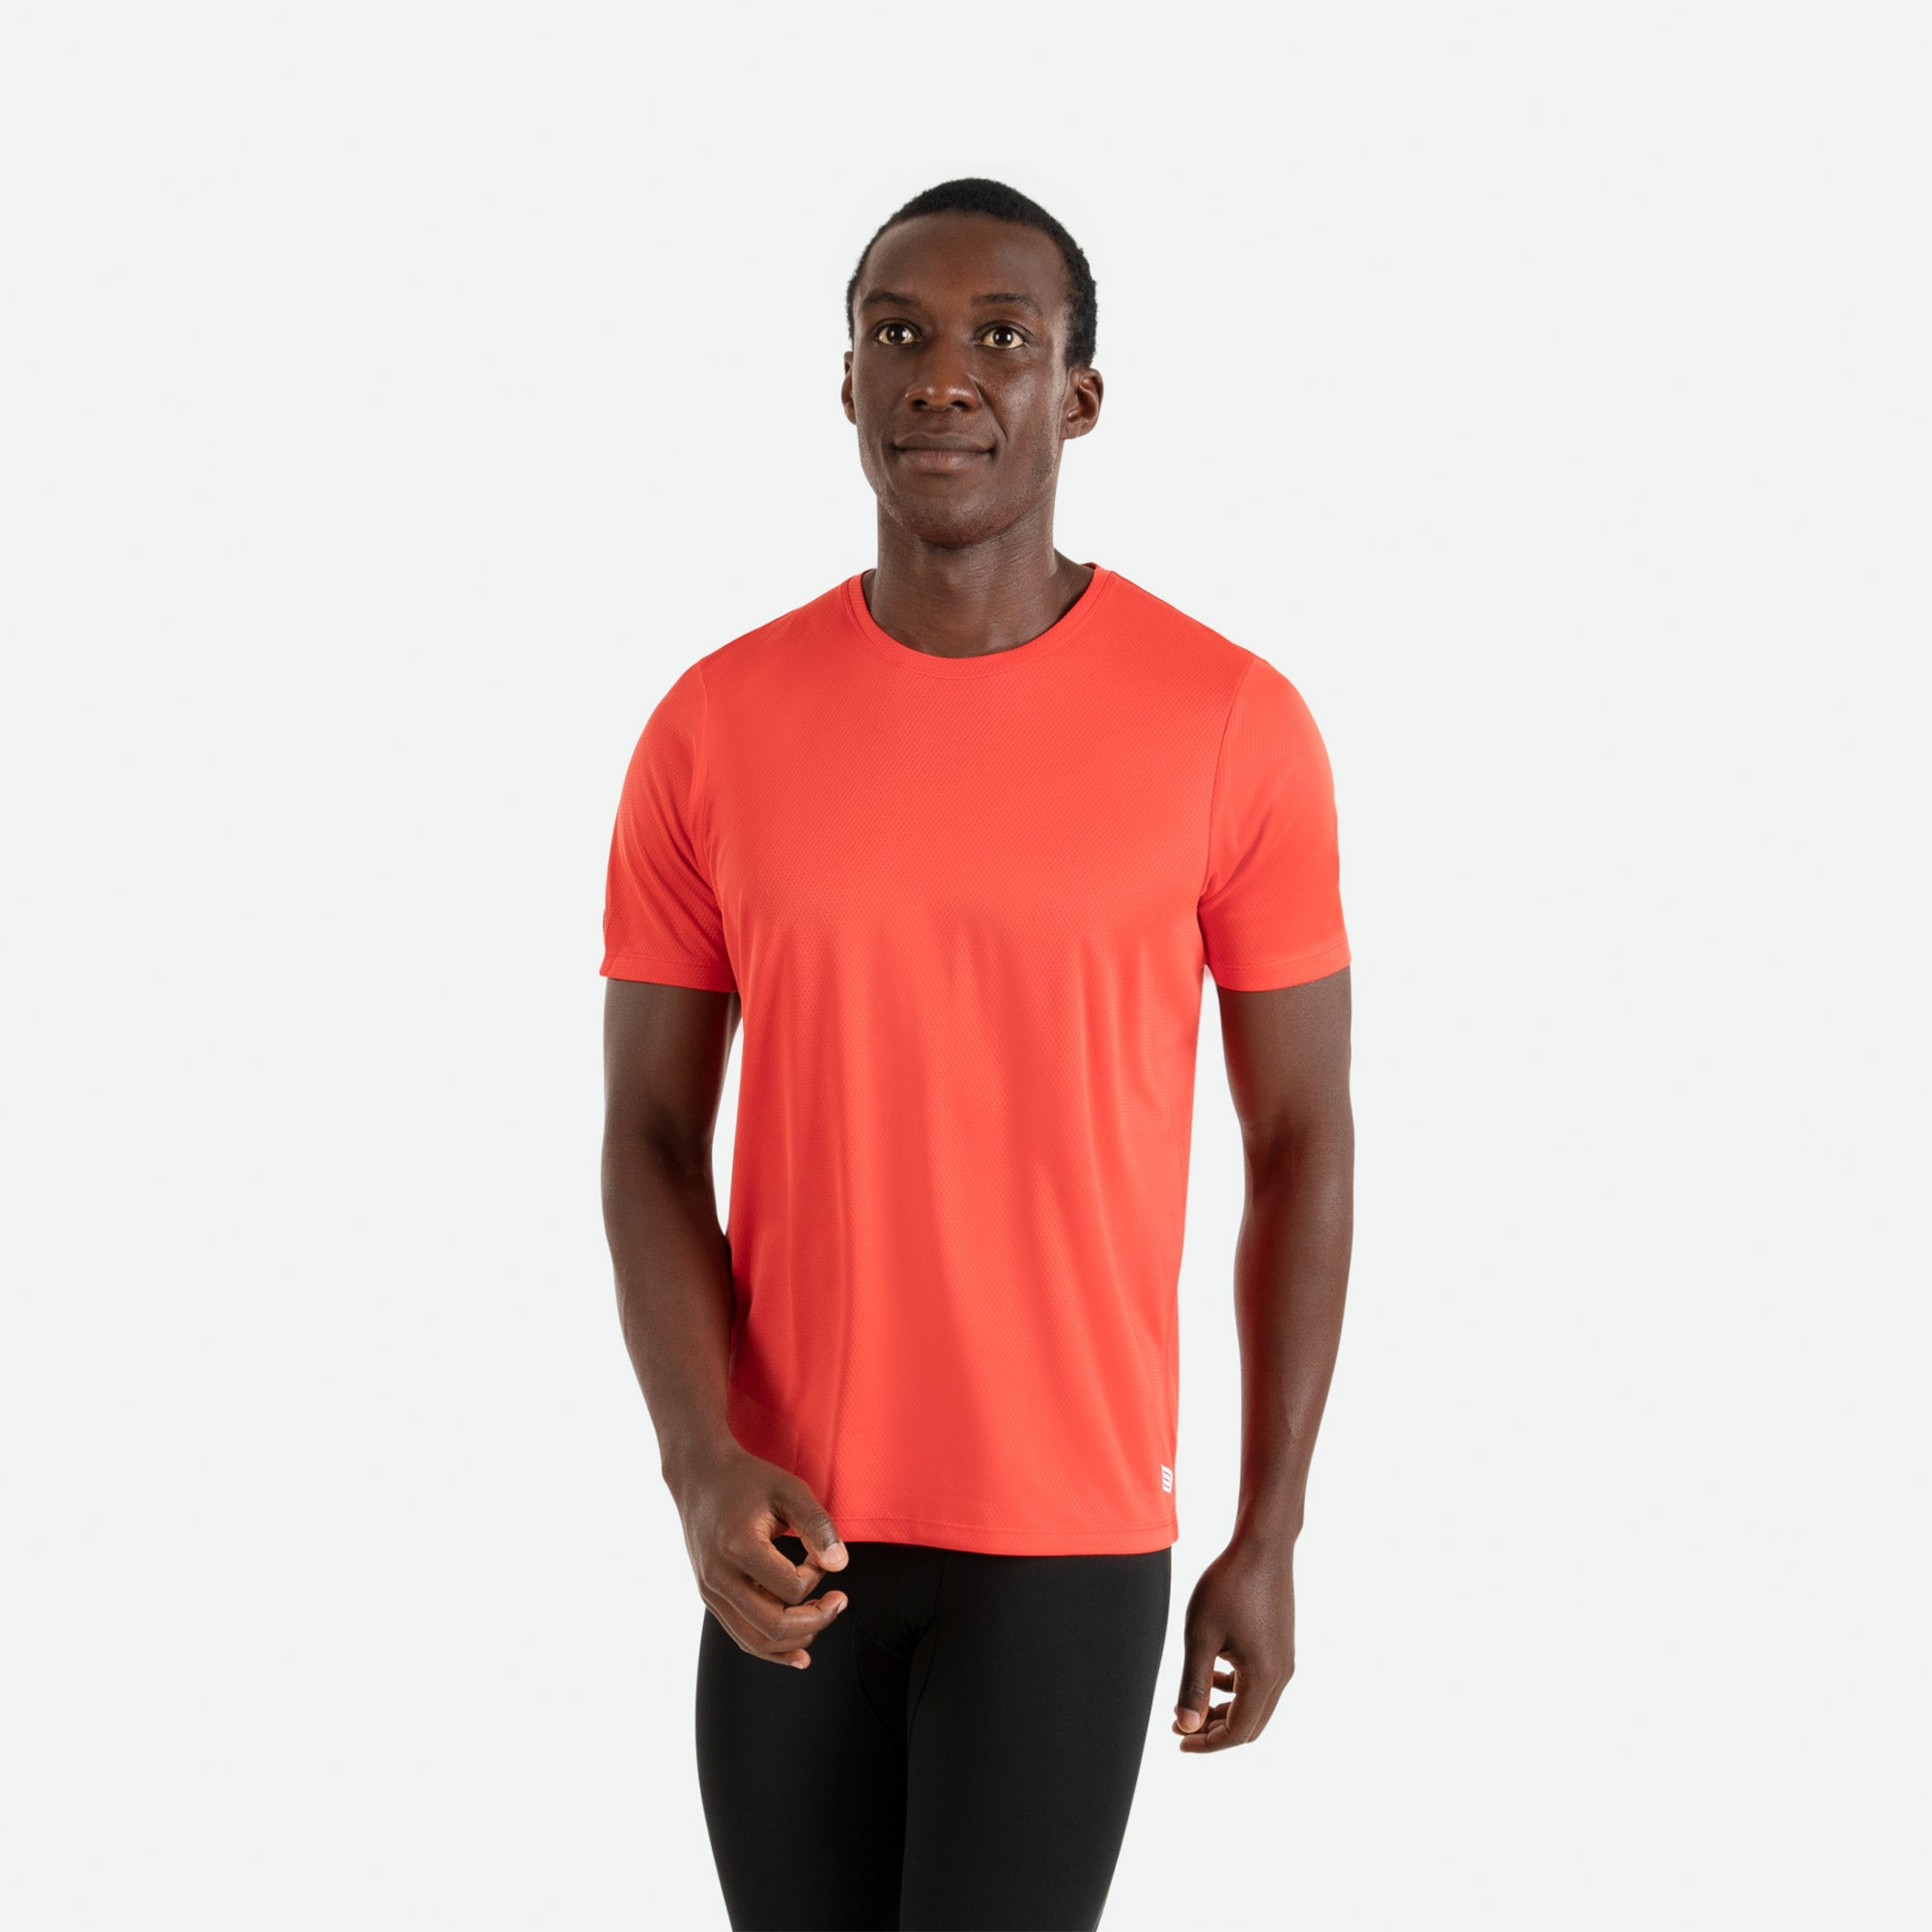 Our Pressio men's red Hāpai short sleeve t-shirt features EcoTECH MF fabric which has dual filament recycled polyester yarns from Unifi for superior moisture control to keep you dry.